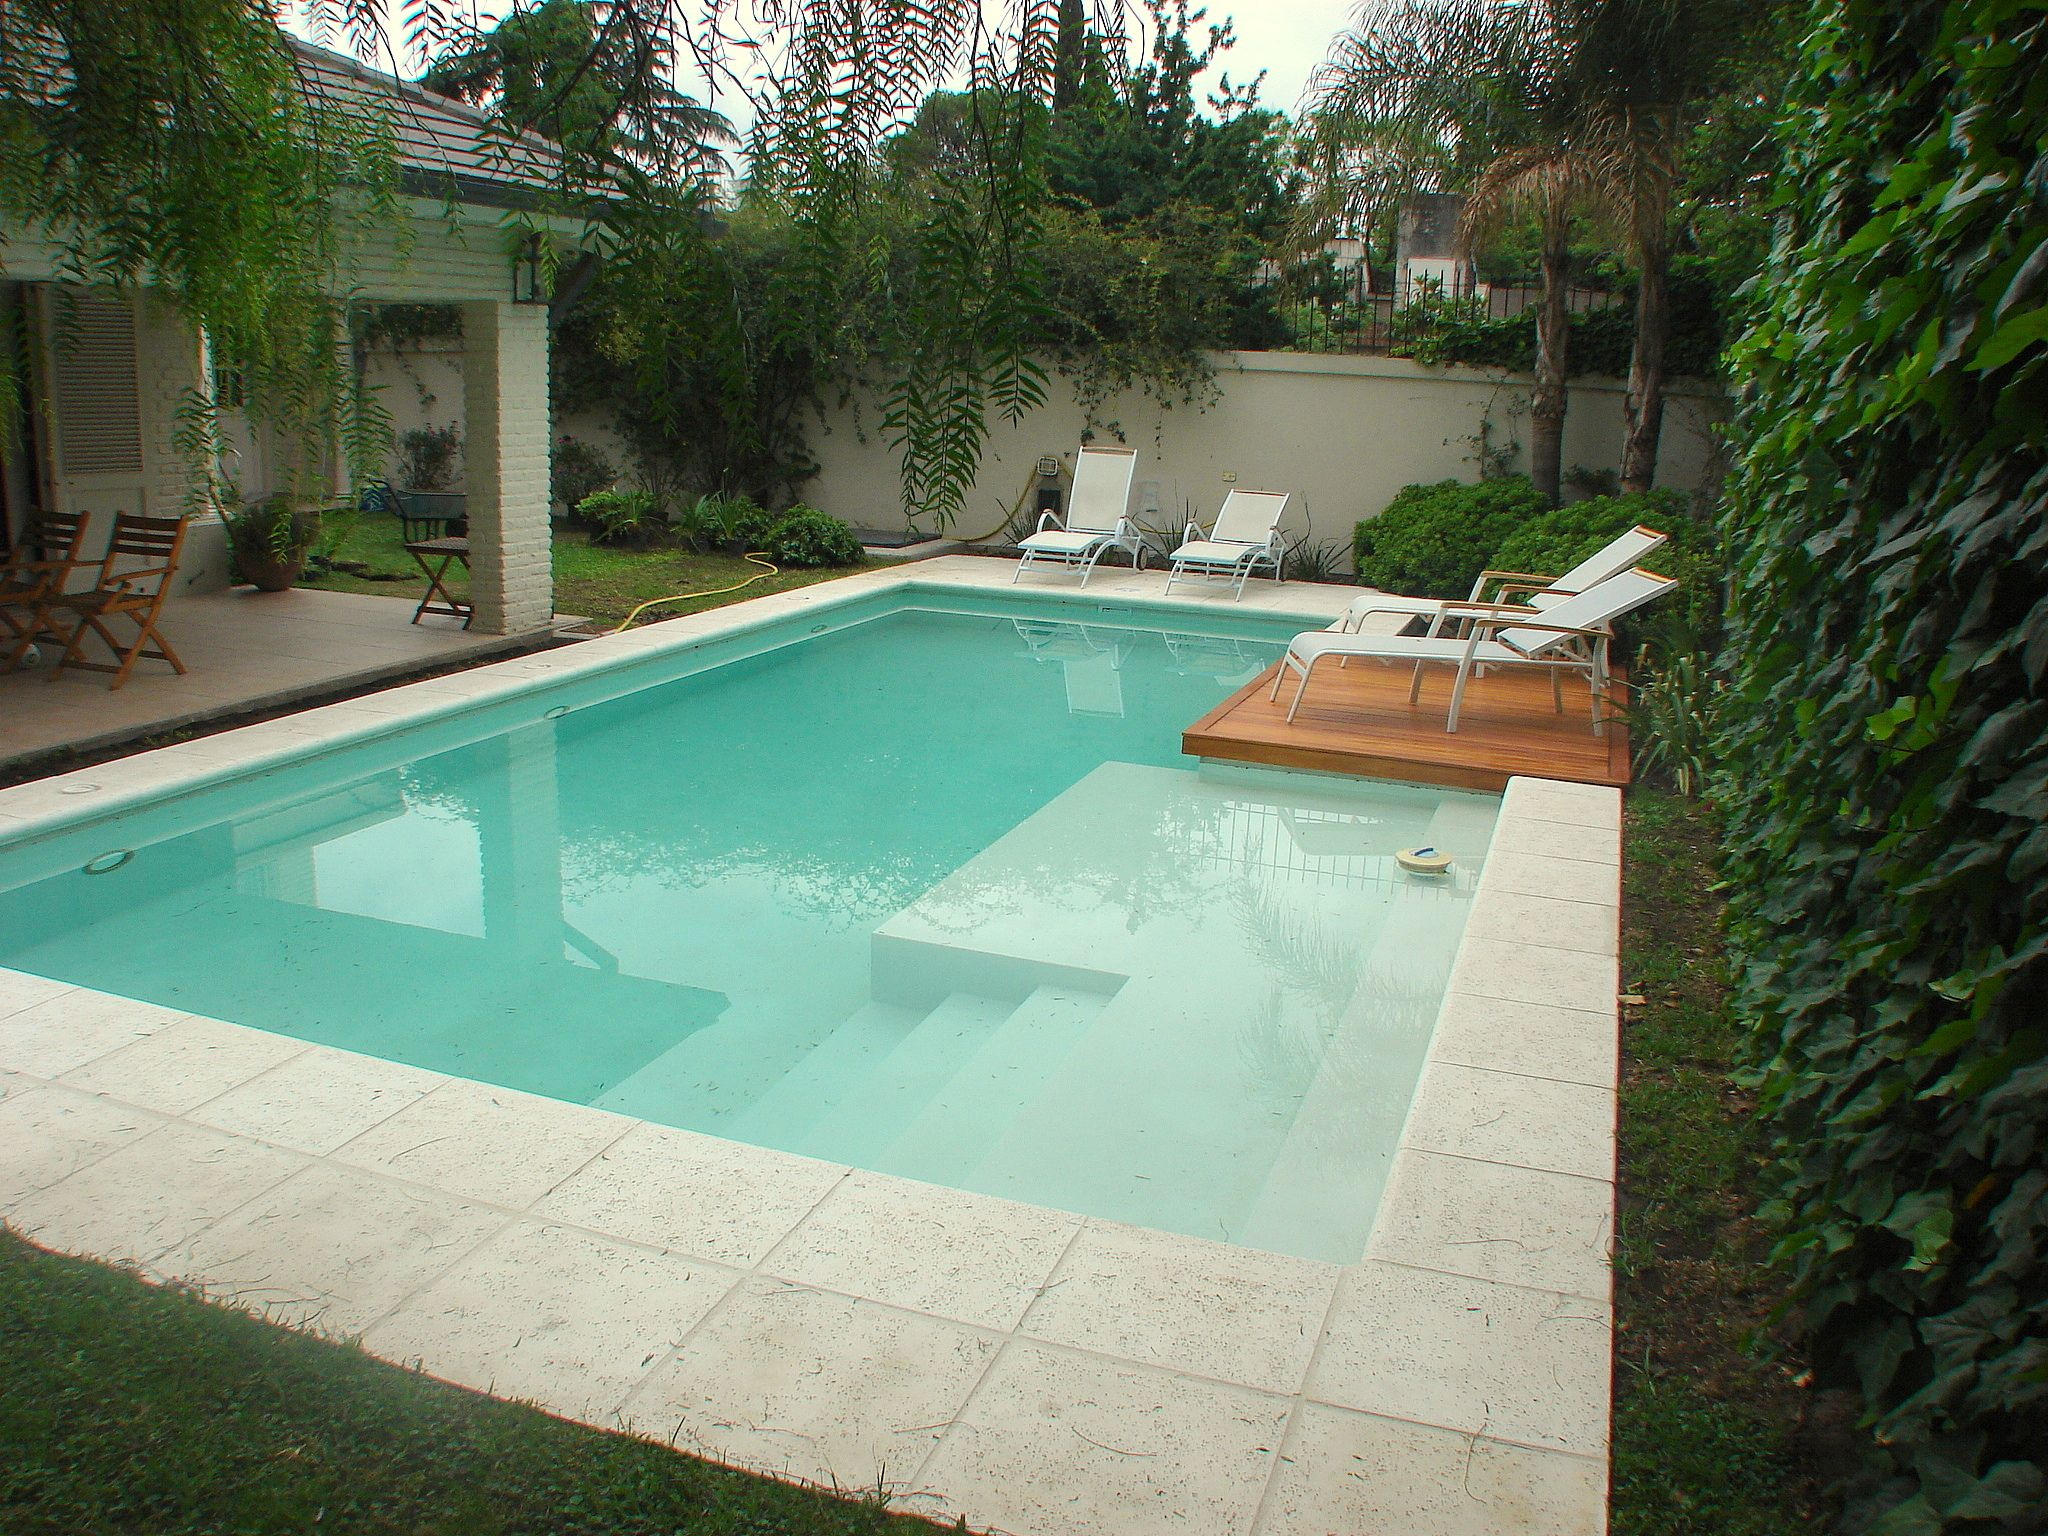 Piscina familiar swimmingpool deck de madera for Disenos de jardines para casas modernas